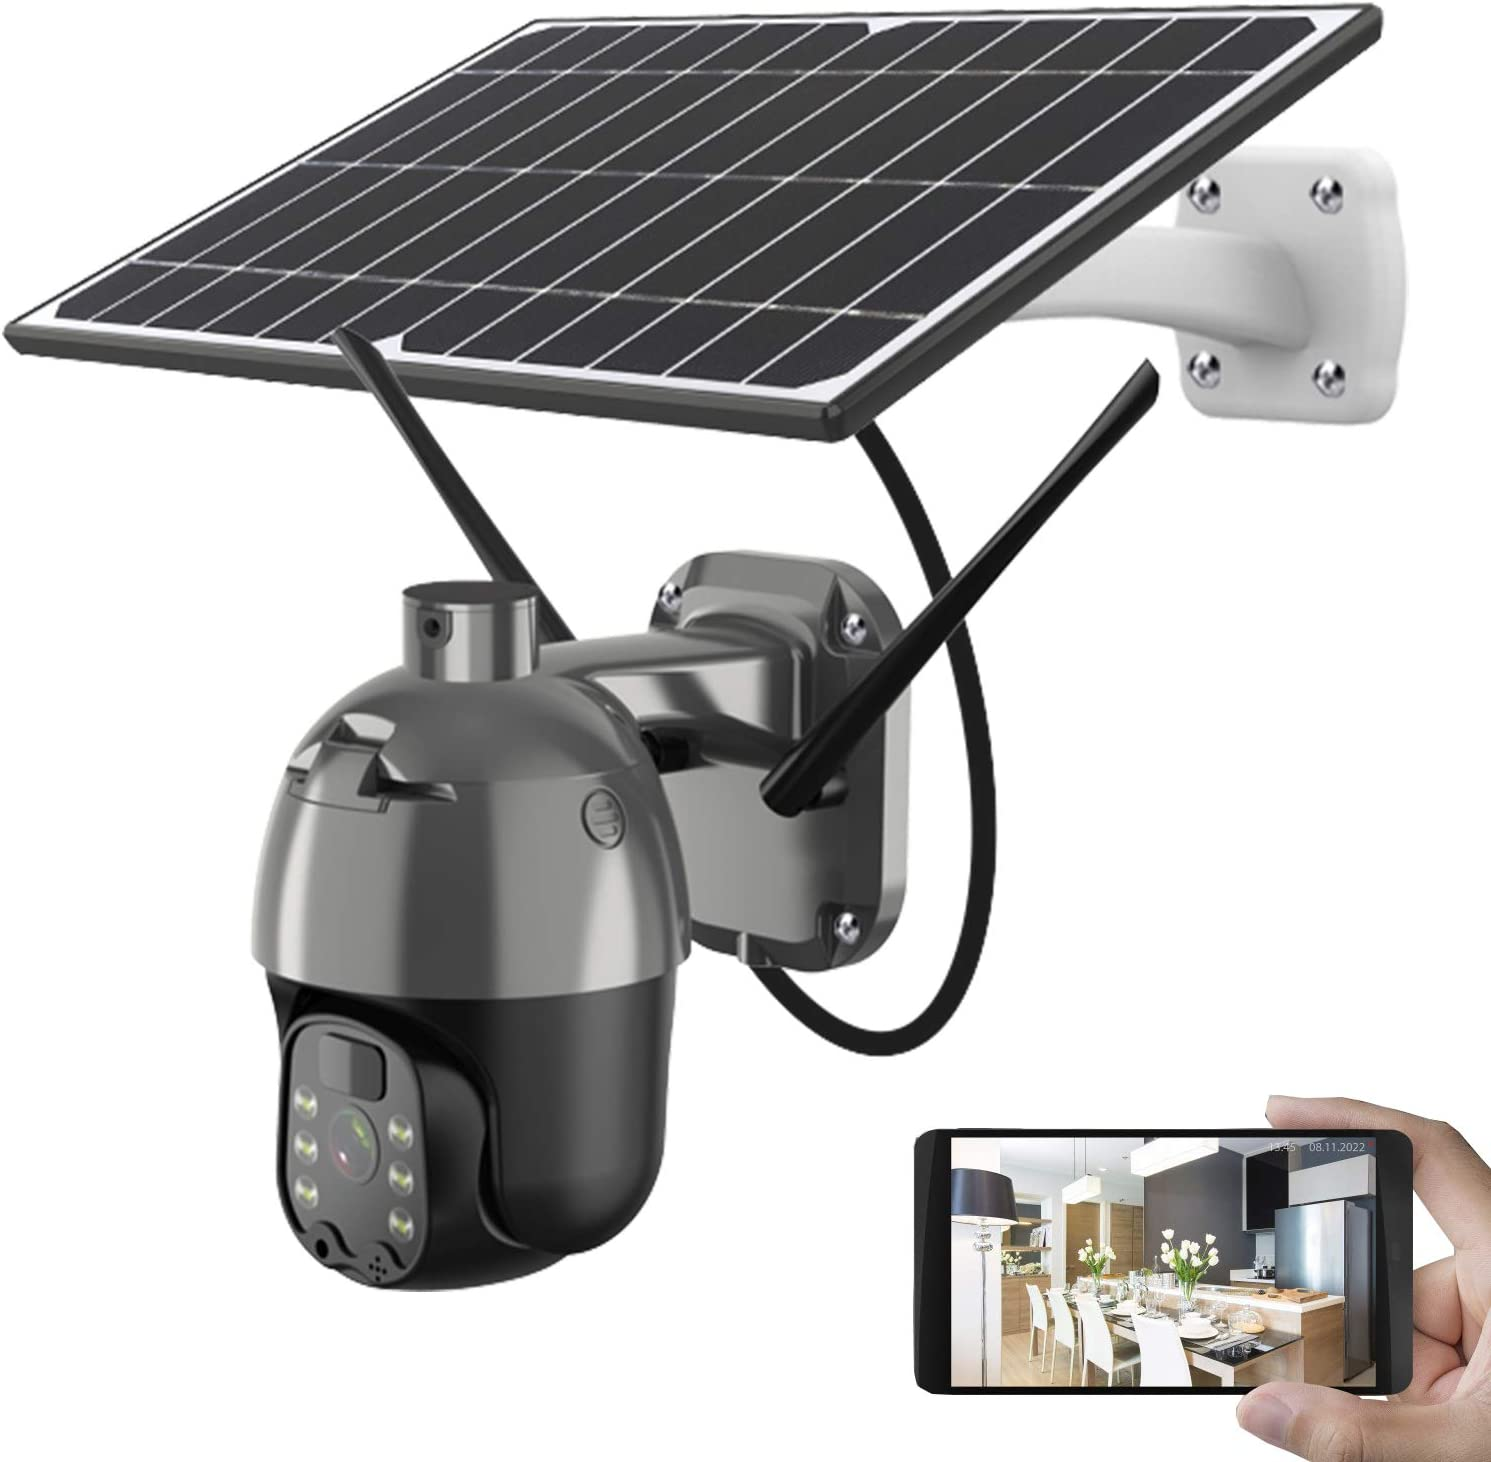 Wireless Solar Security Camera - 1080P Outstanding WiFi R and Panel HD Cash special price